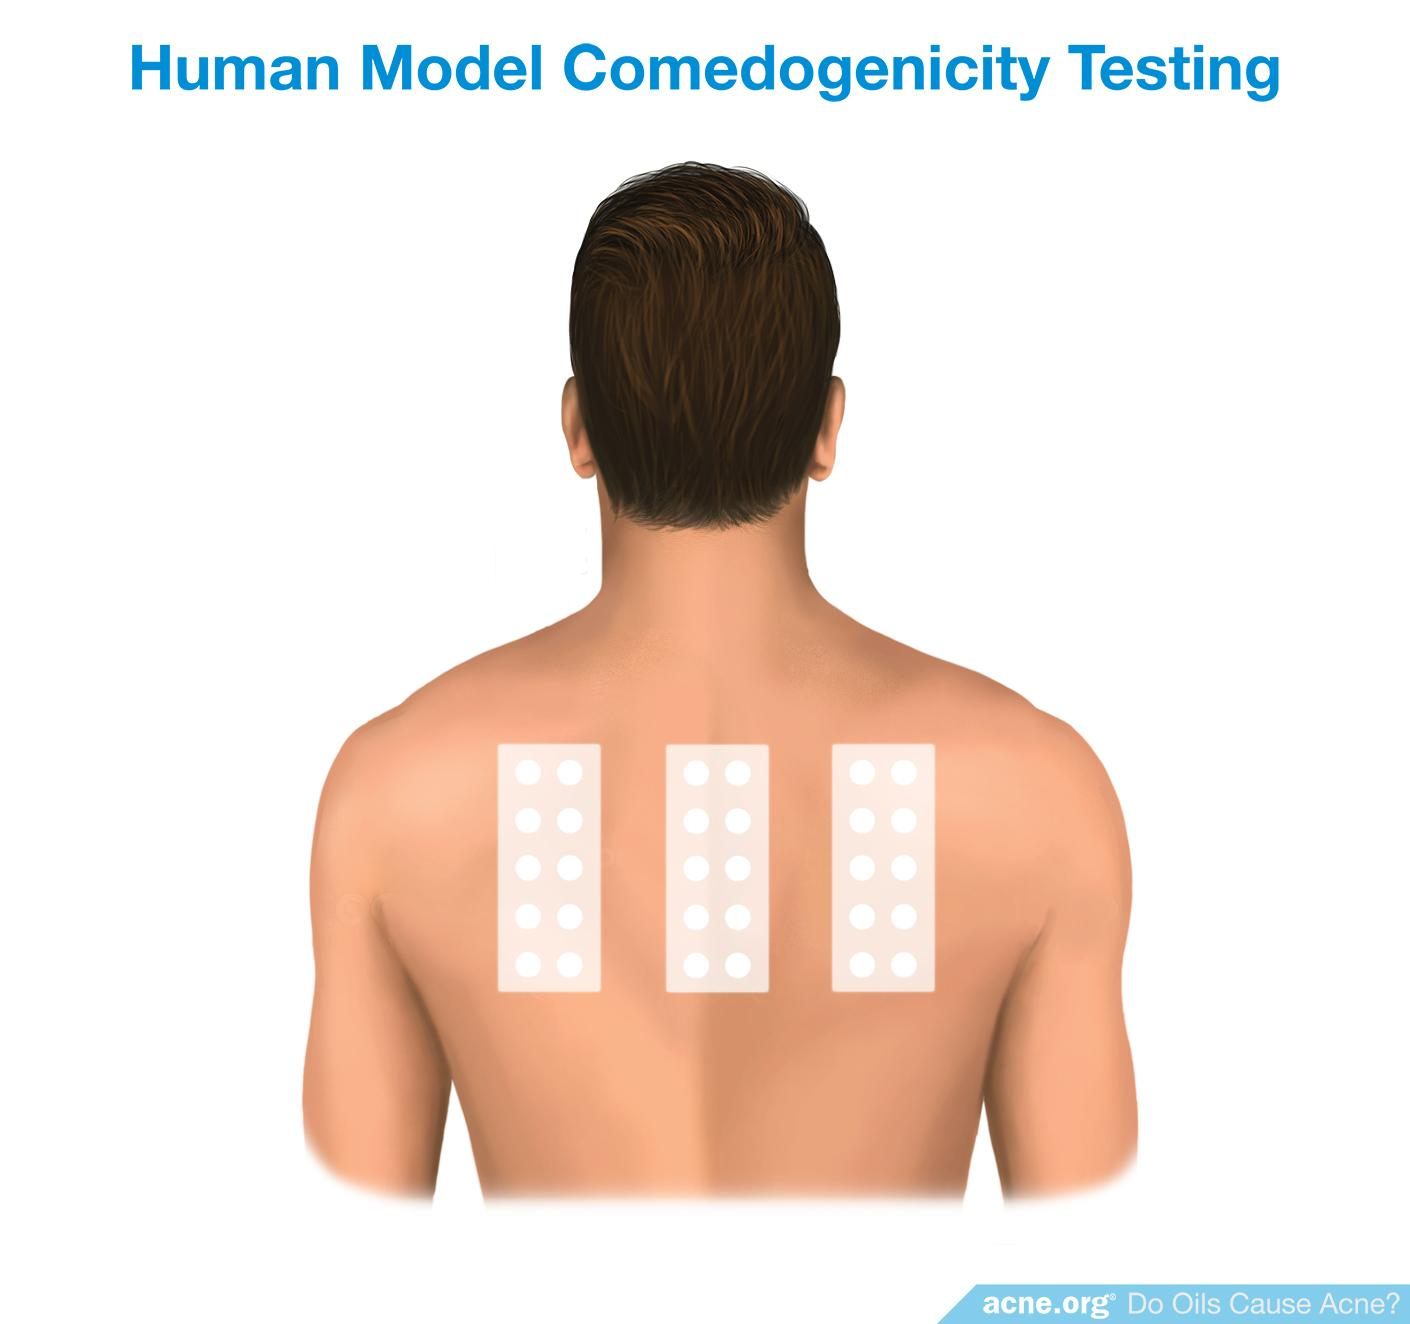 Human Model Comedogenicity Testing